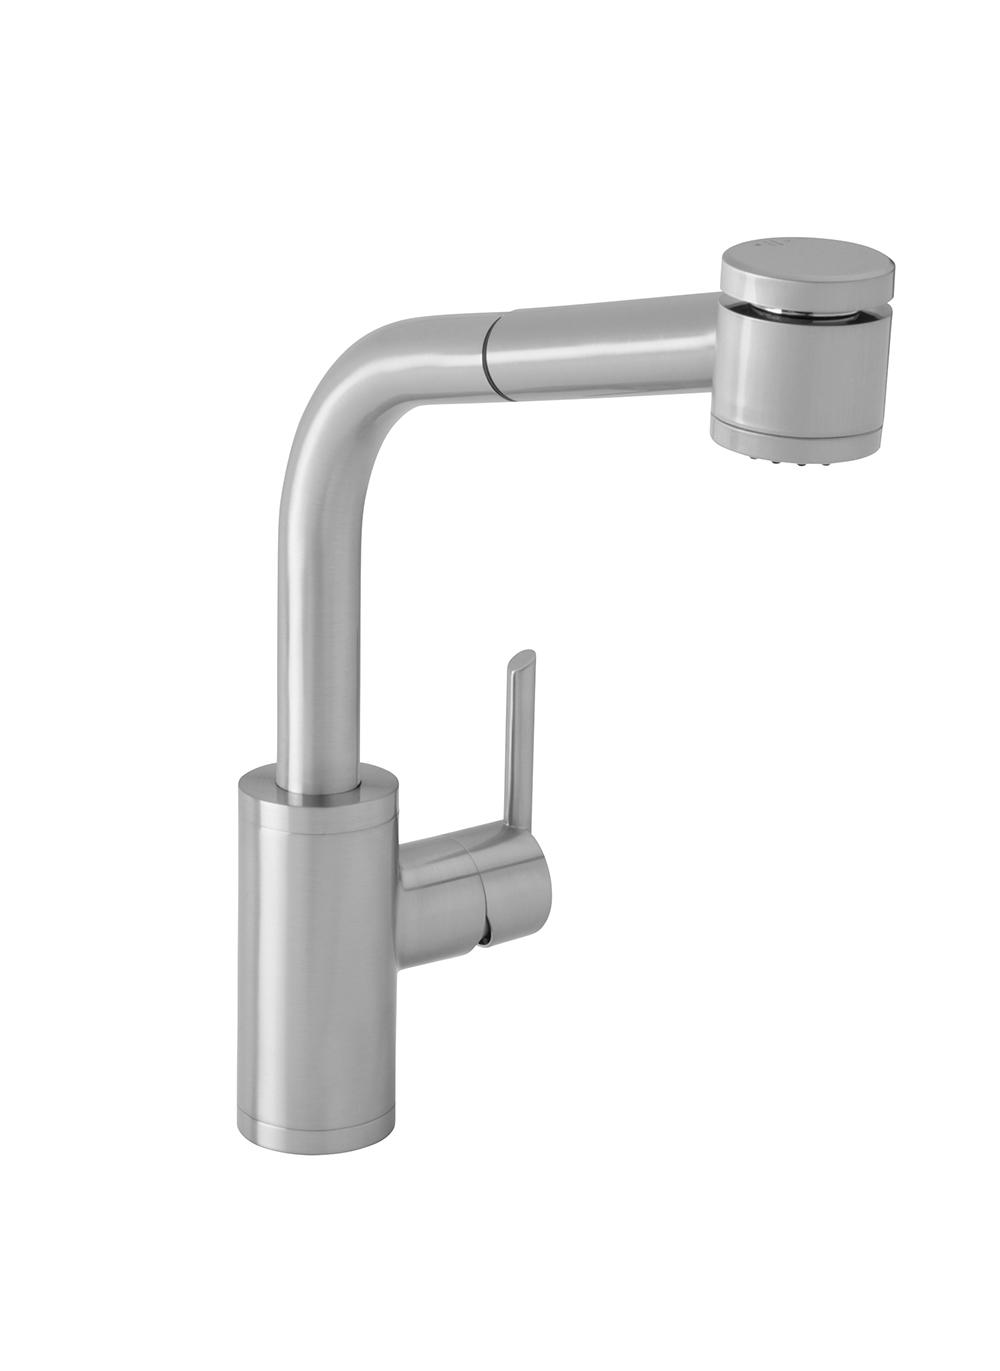 faucets faucet plumbing gerber keenan htm in showroom supply decorative gbr